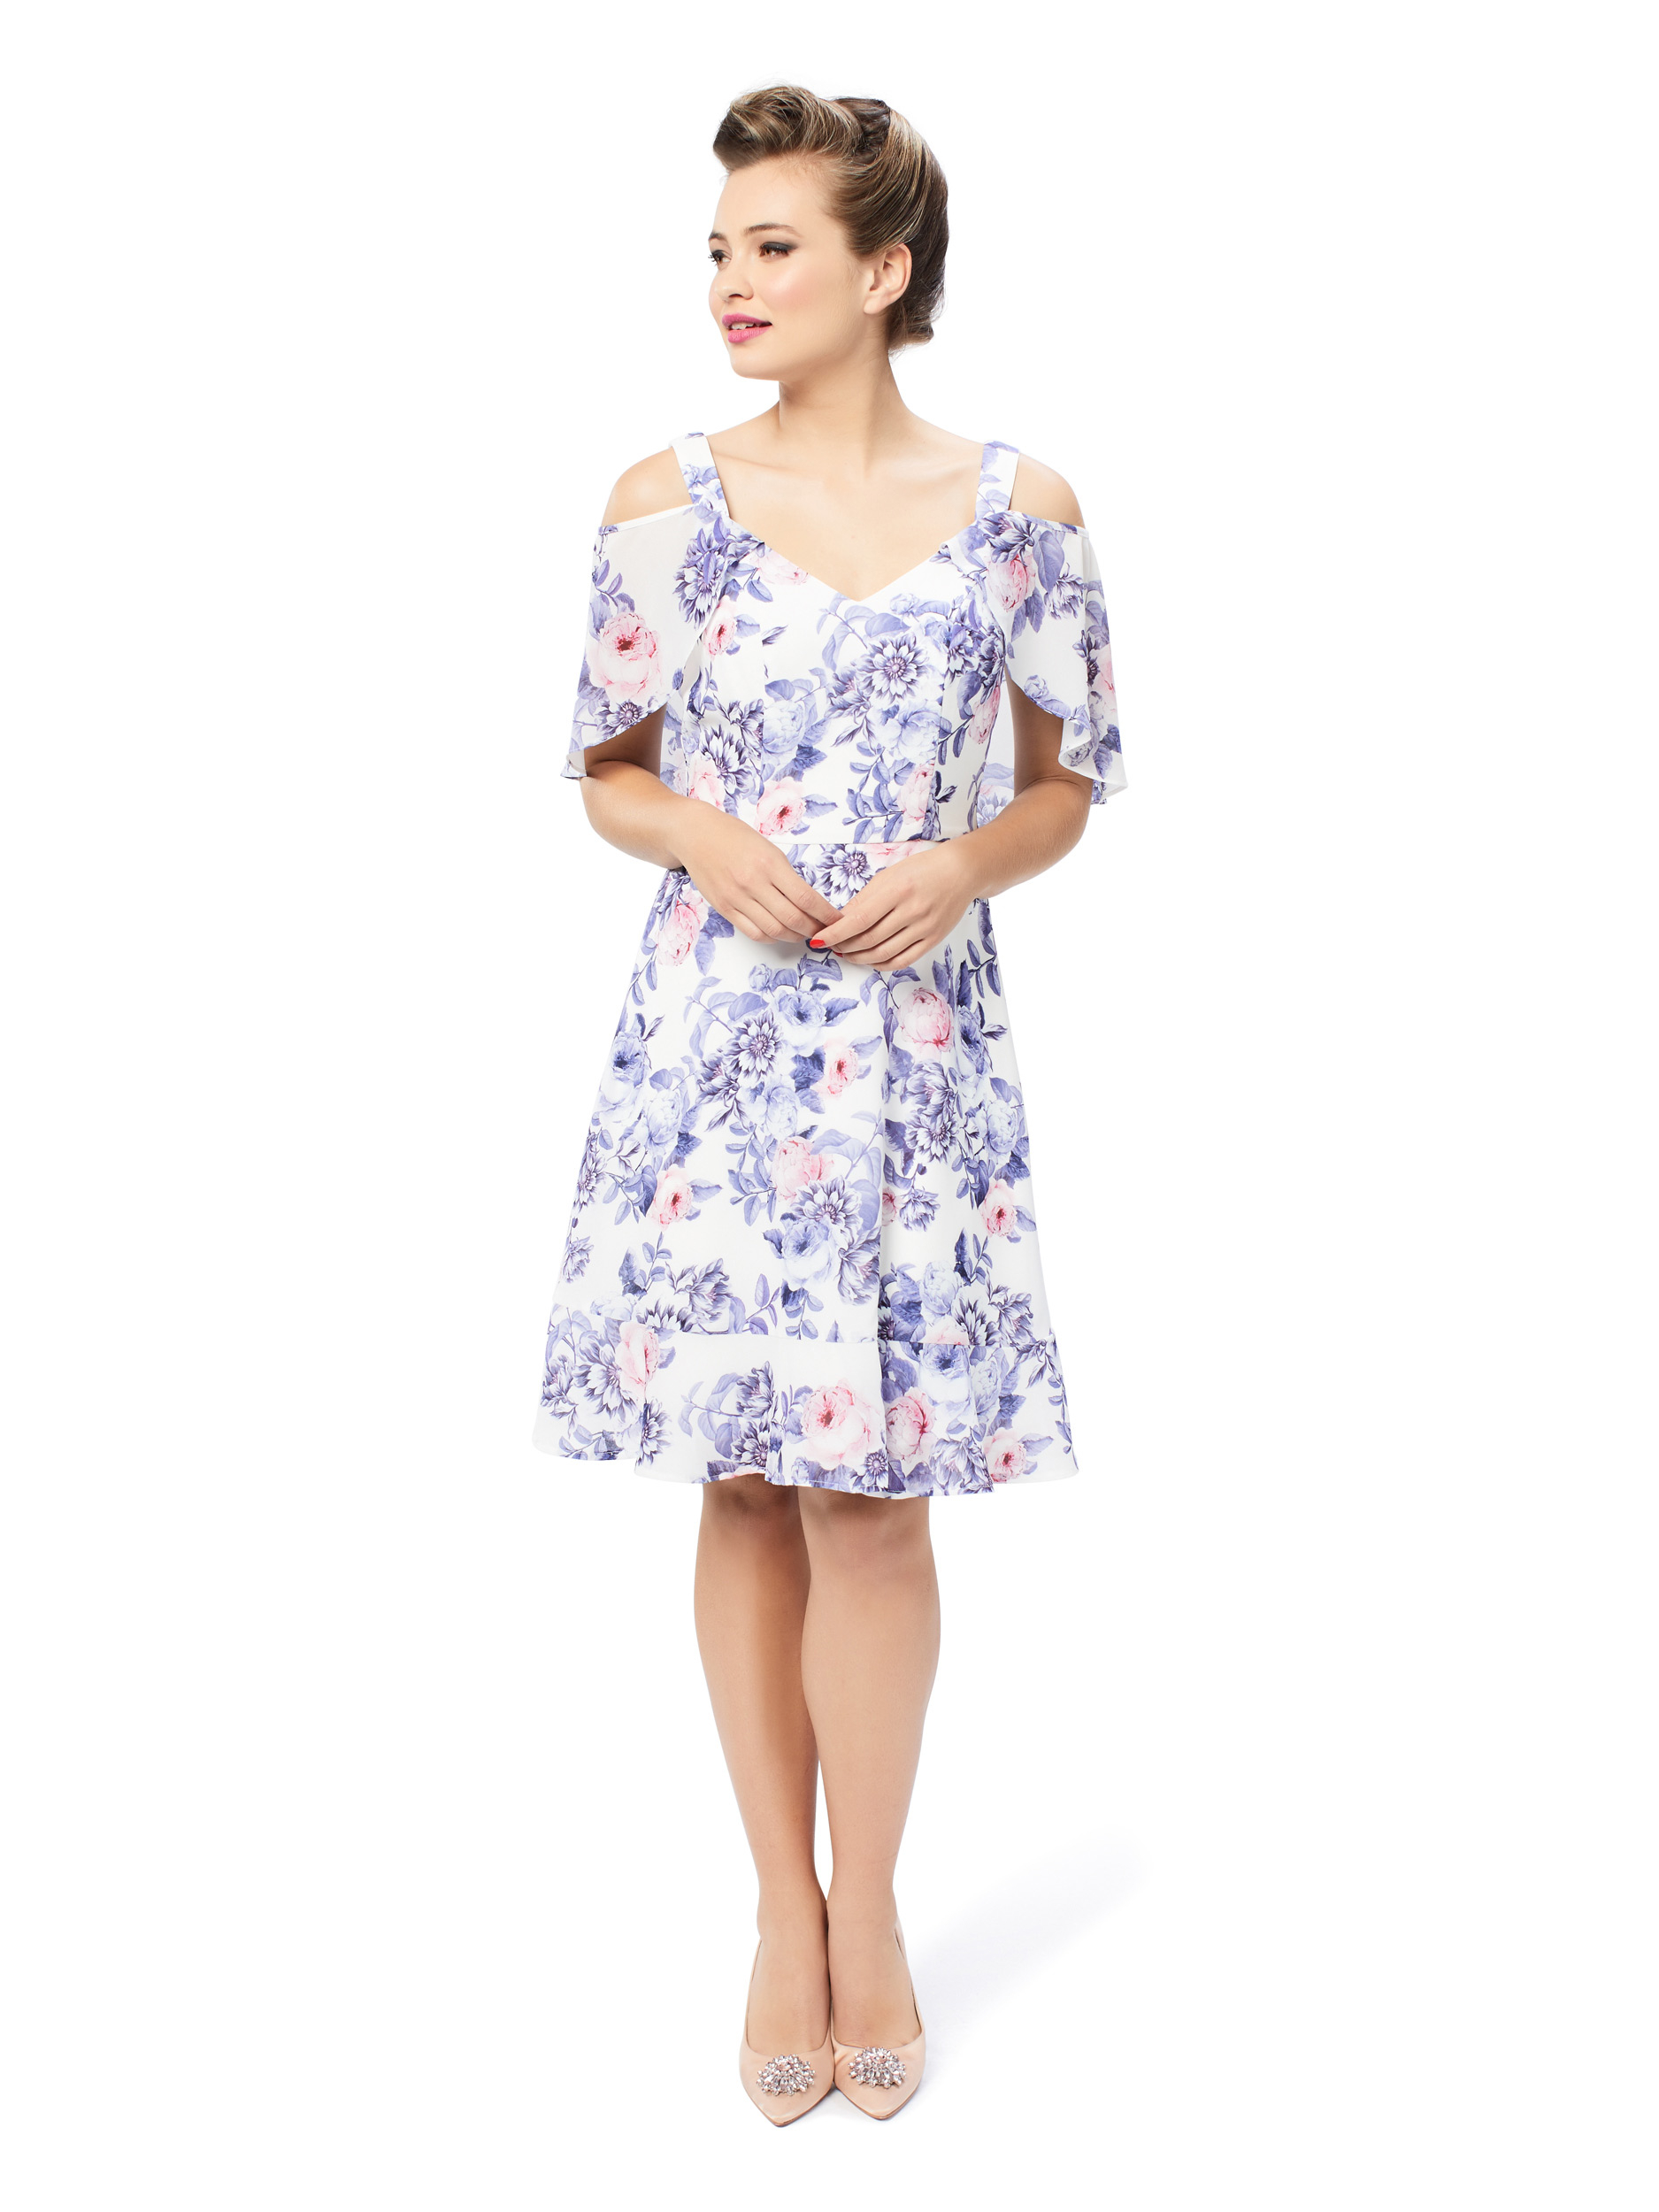 Montego Bay Dress | Shop Dresses Online from Review